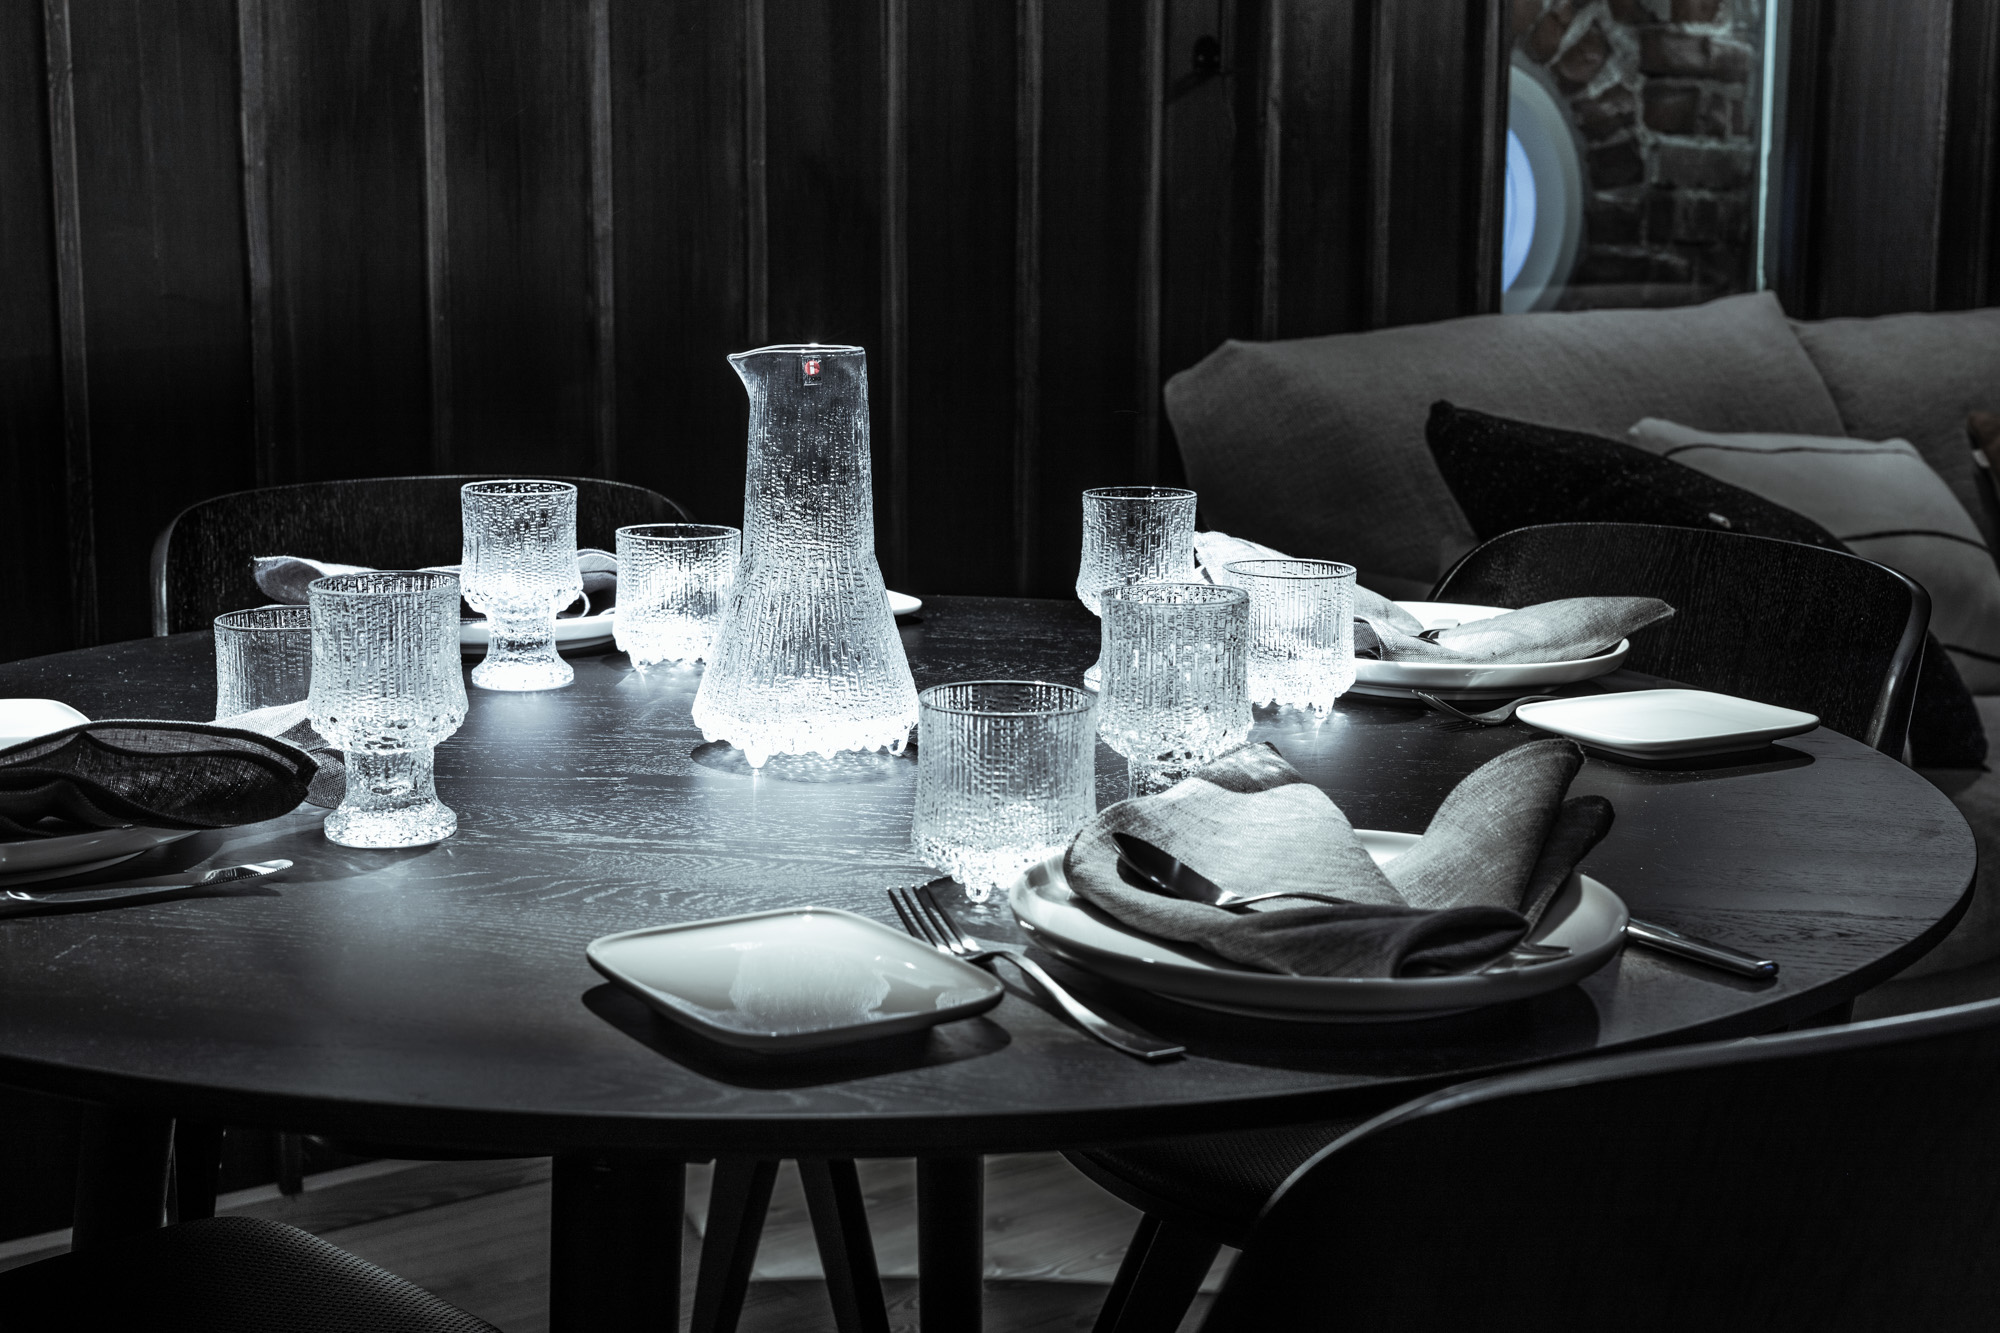 Classic Ultima Thule design tableware by Iittala